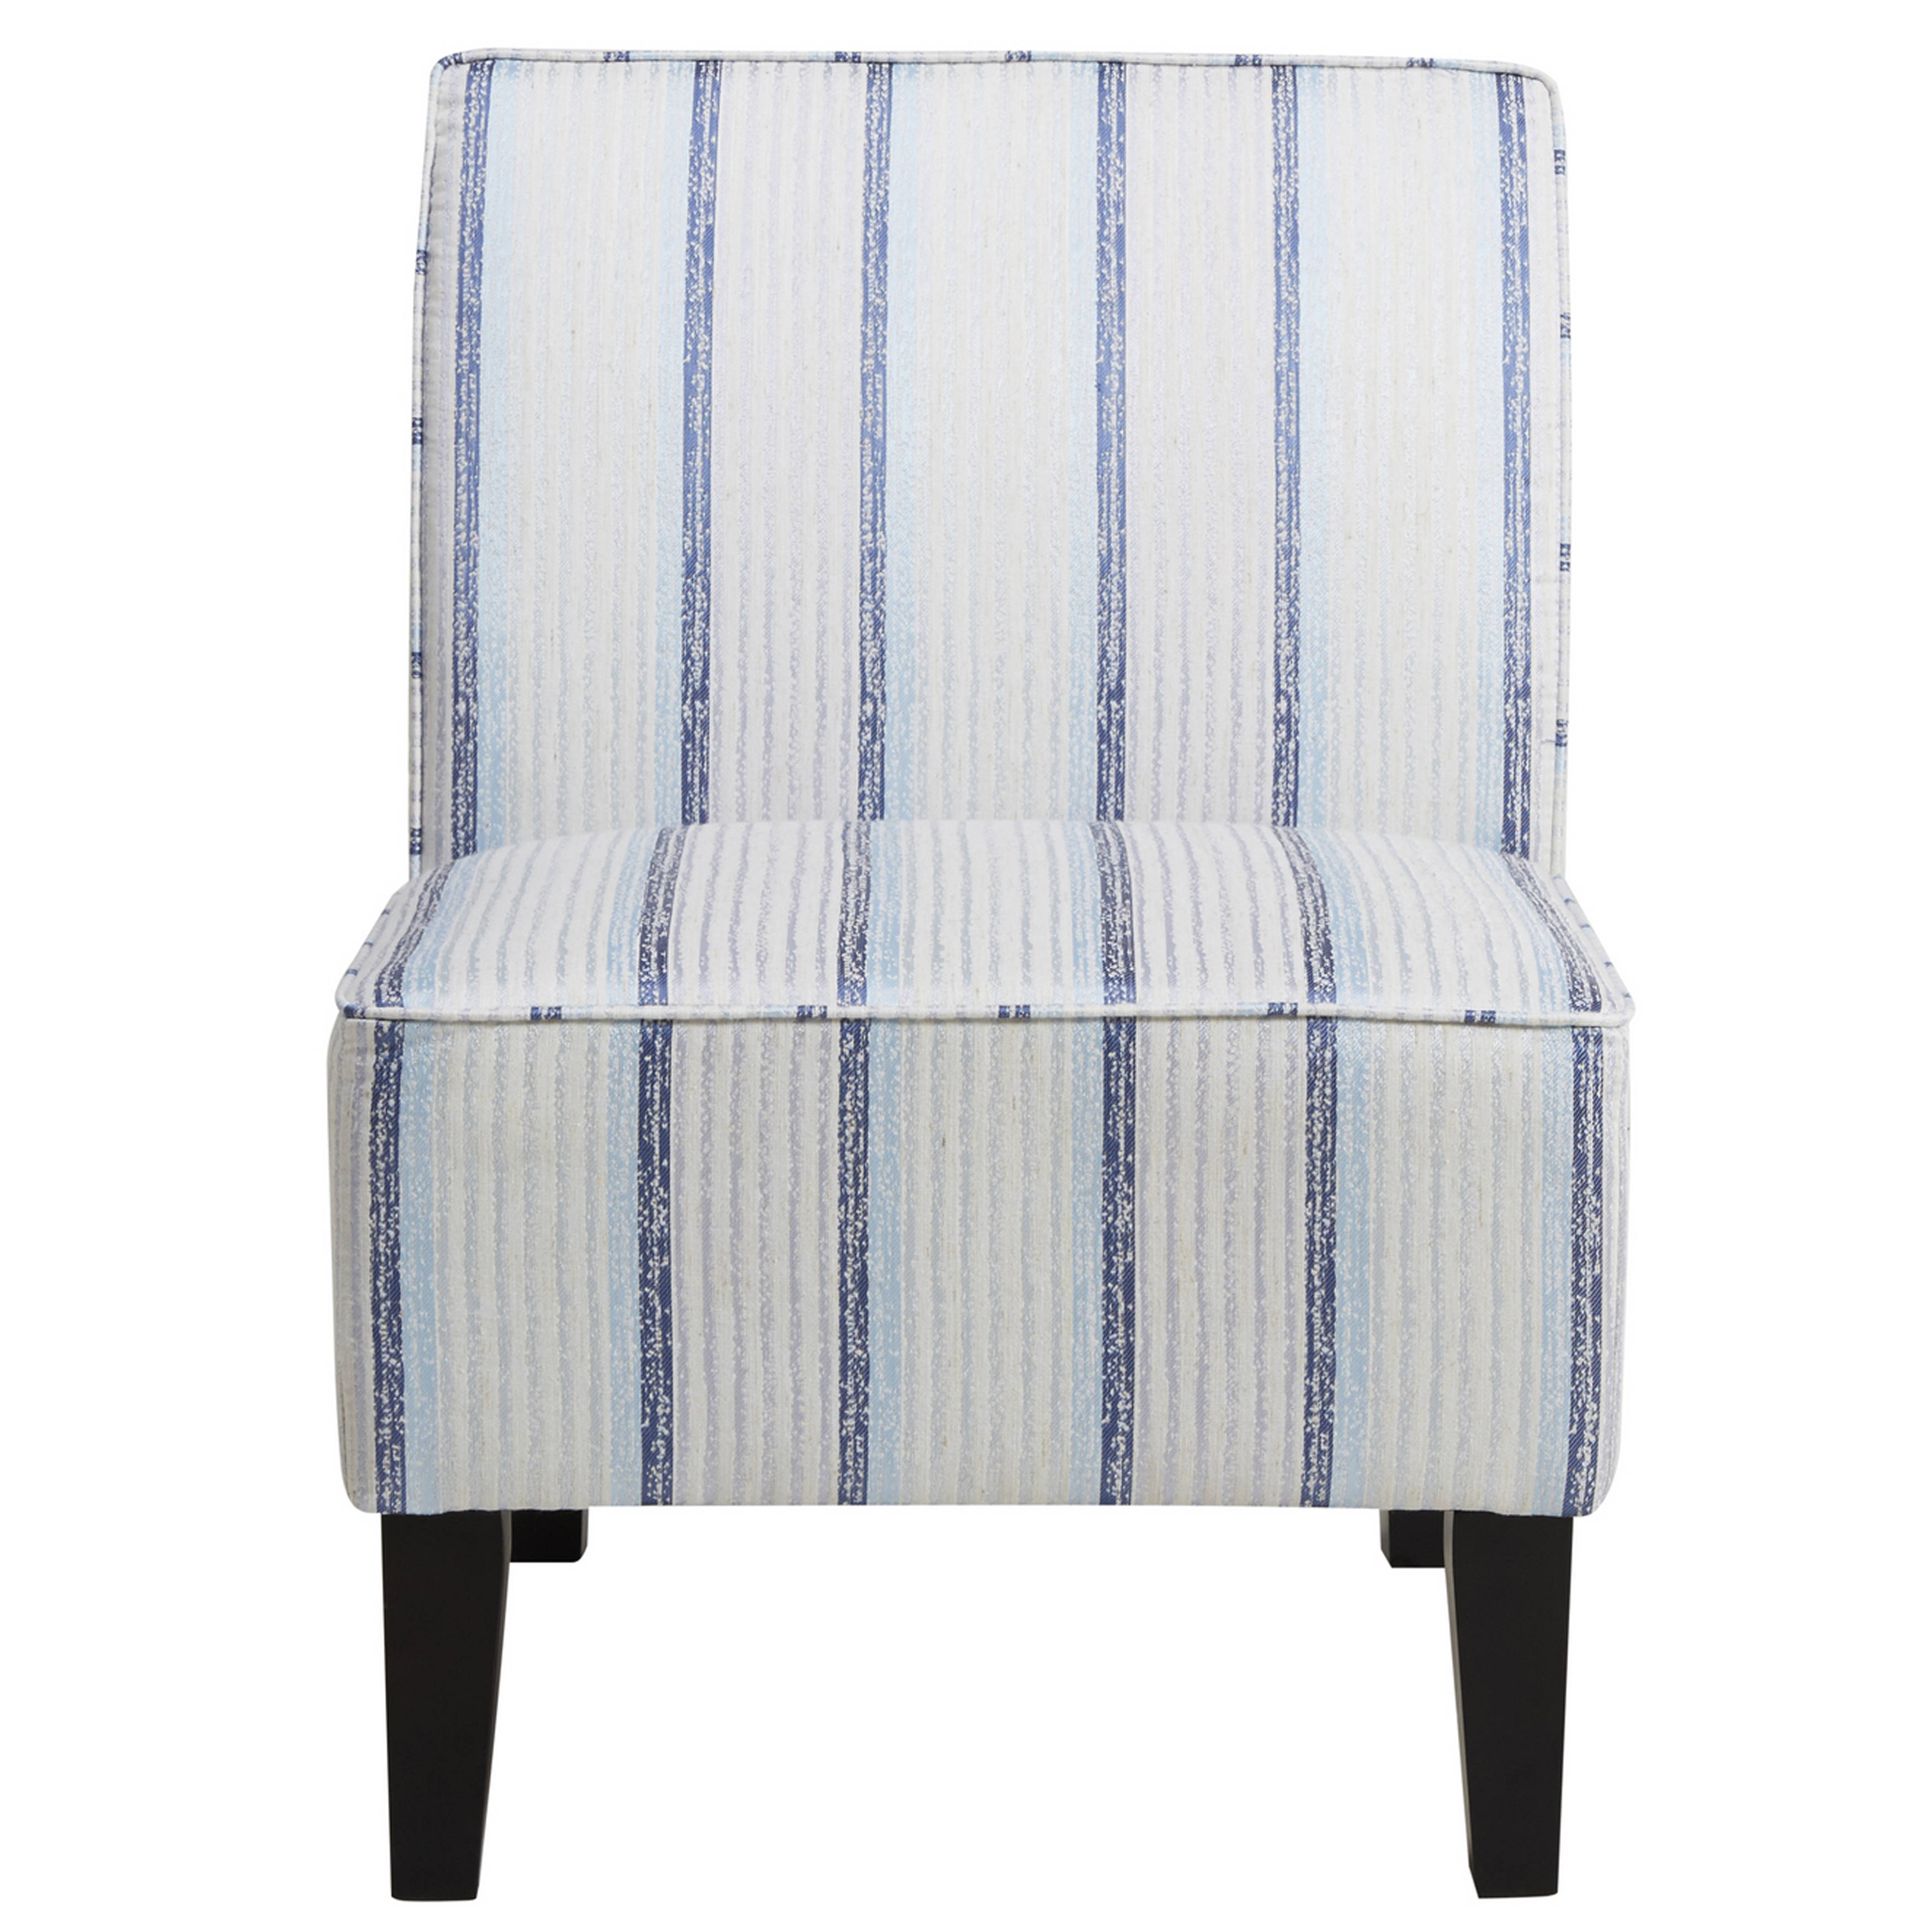 Beige Accent Chairs With Blue Stripes.Home Meridian Blue Striped Armless Slipper Chair The Classy Home